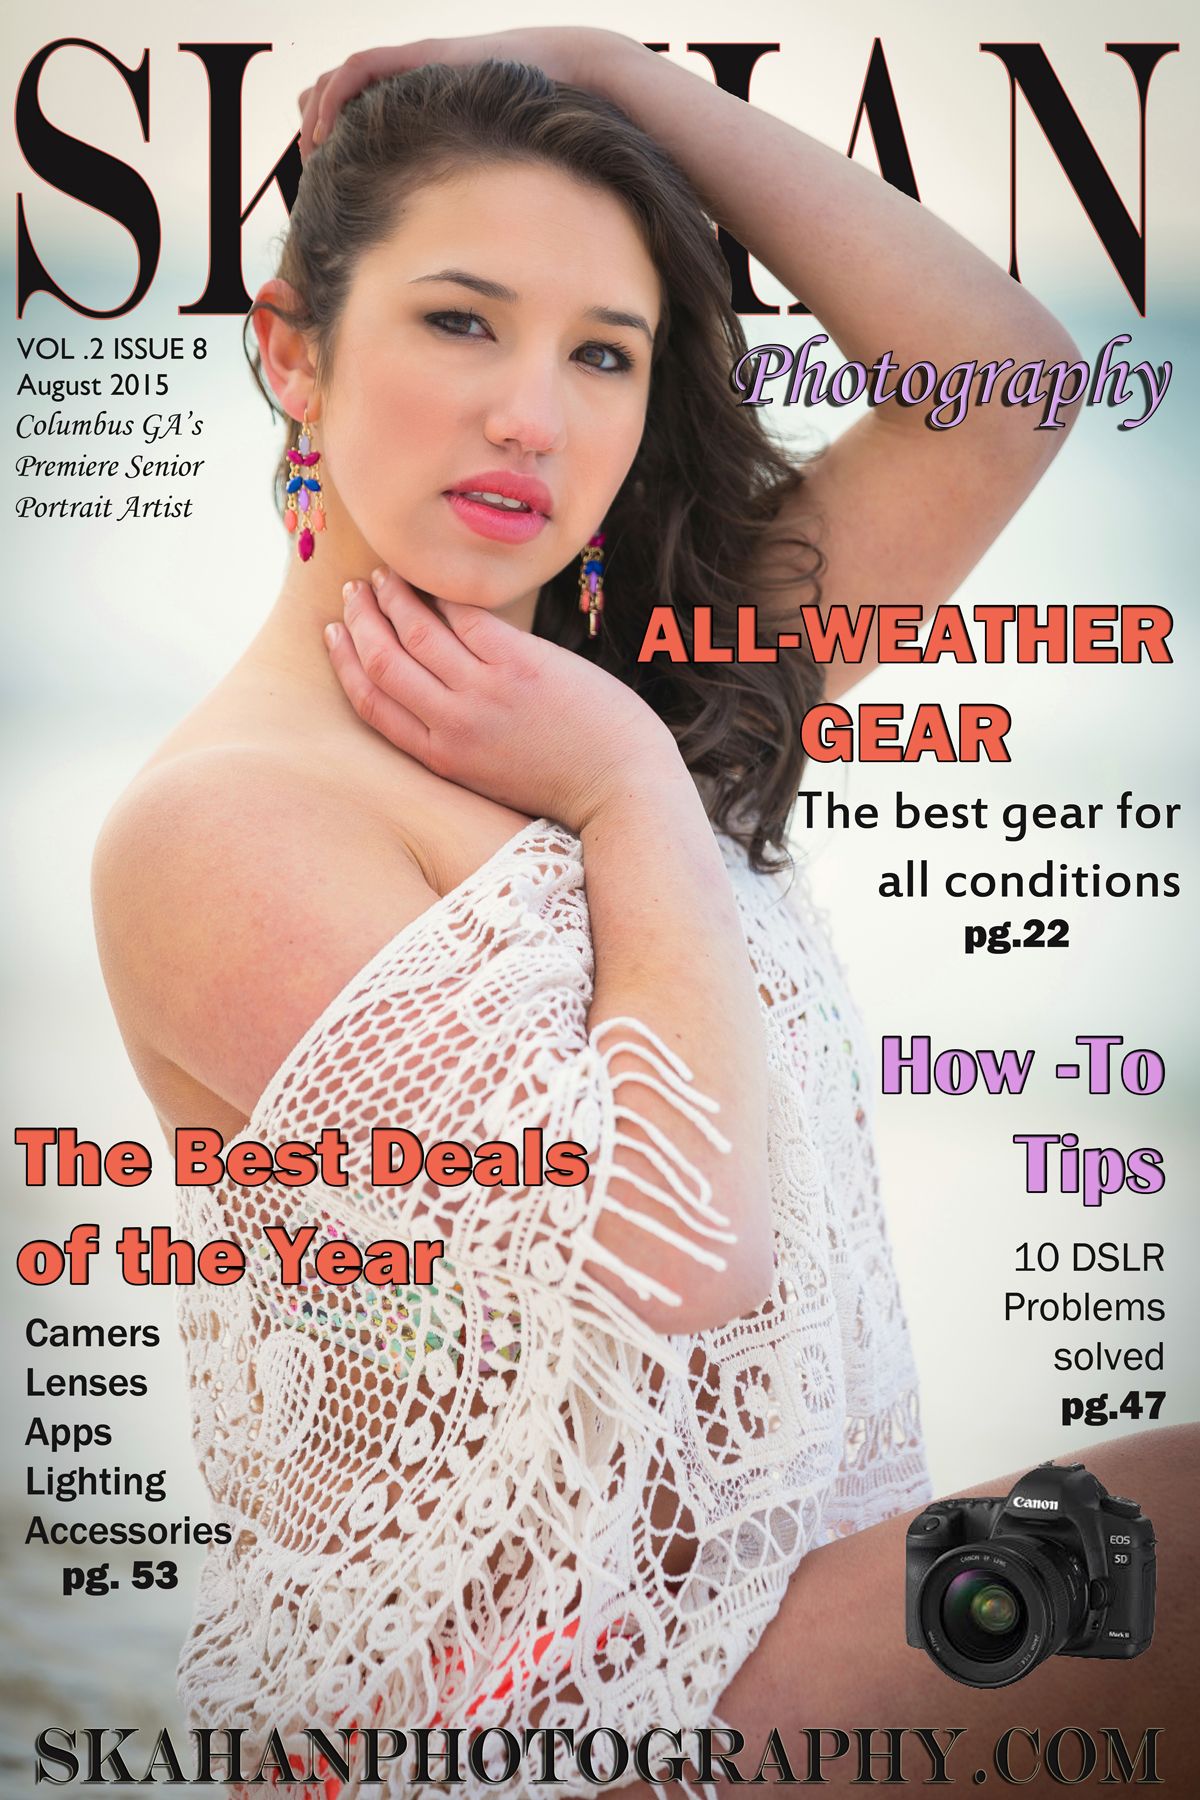 Volume 2 Issue 8 Aug 2015